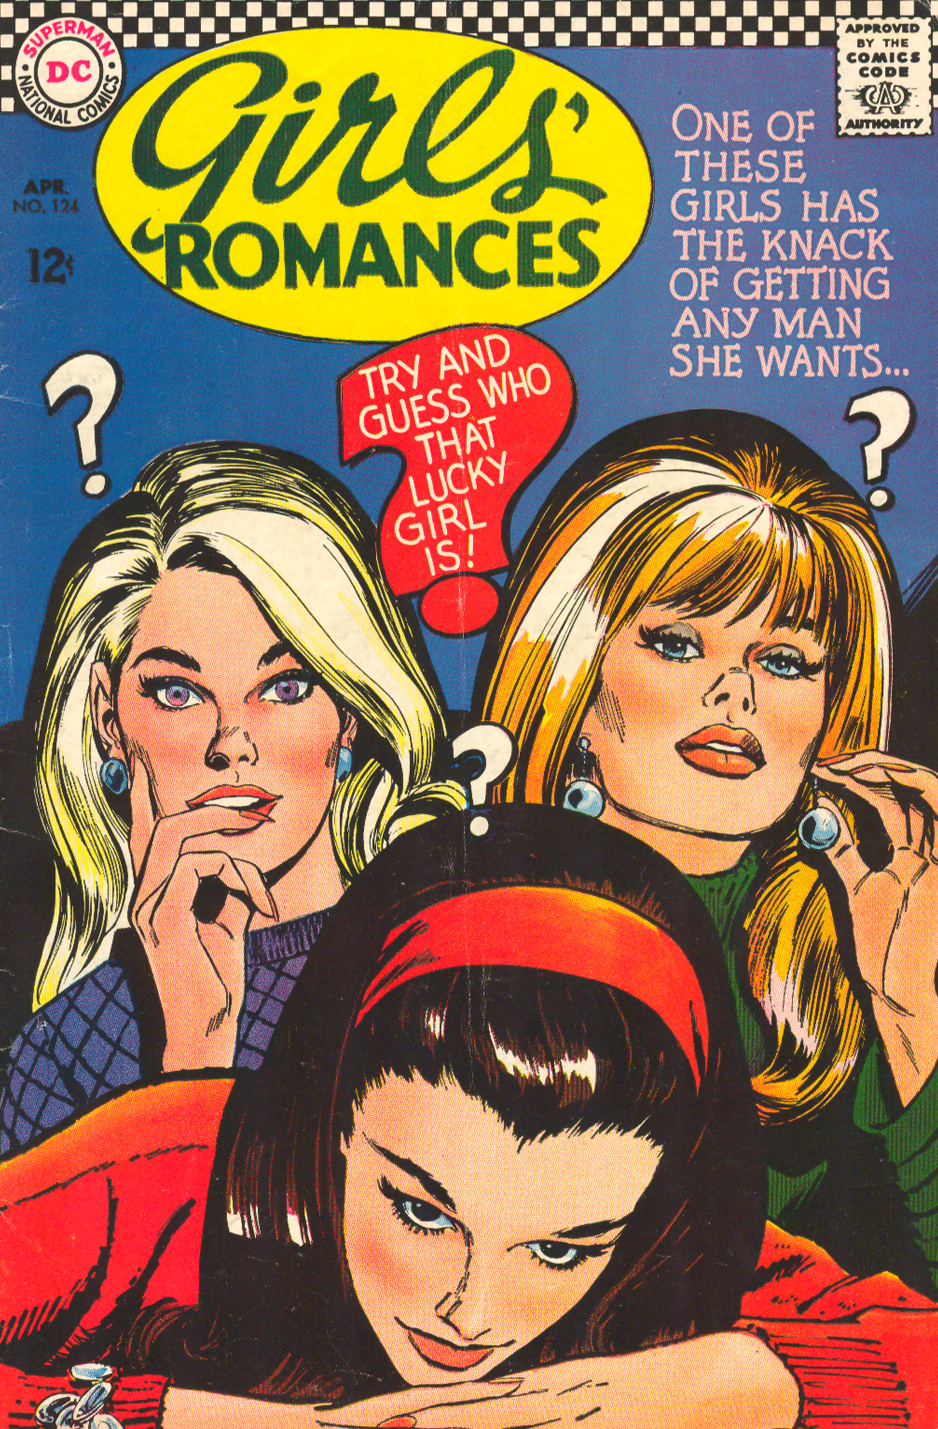 Girls' Romances #124, April 1967 Jay Scott Pike Cover